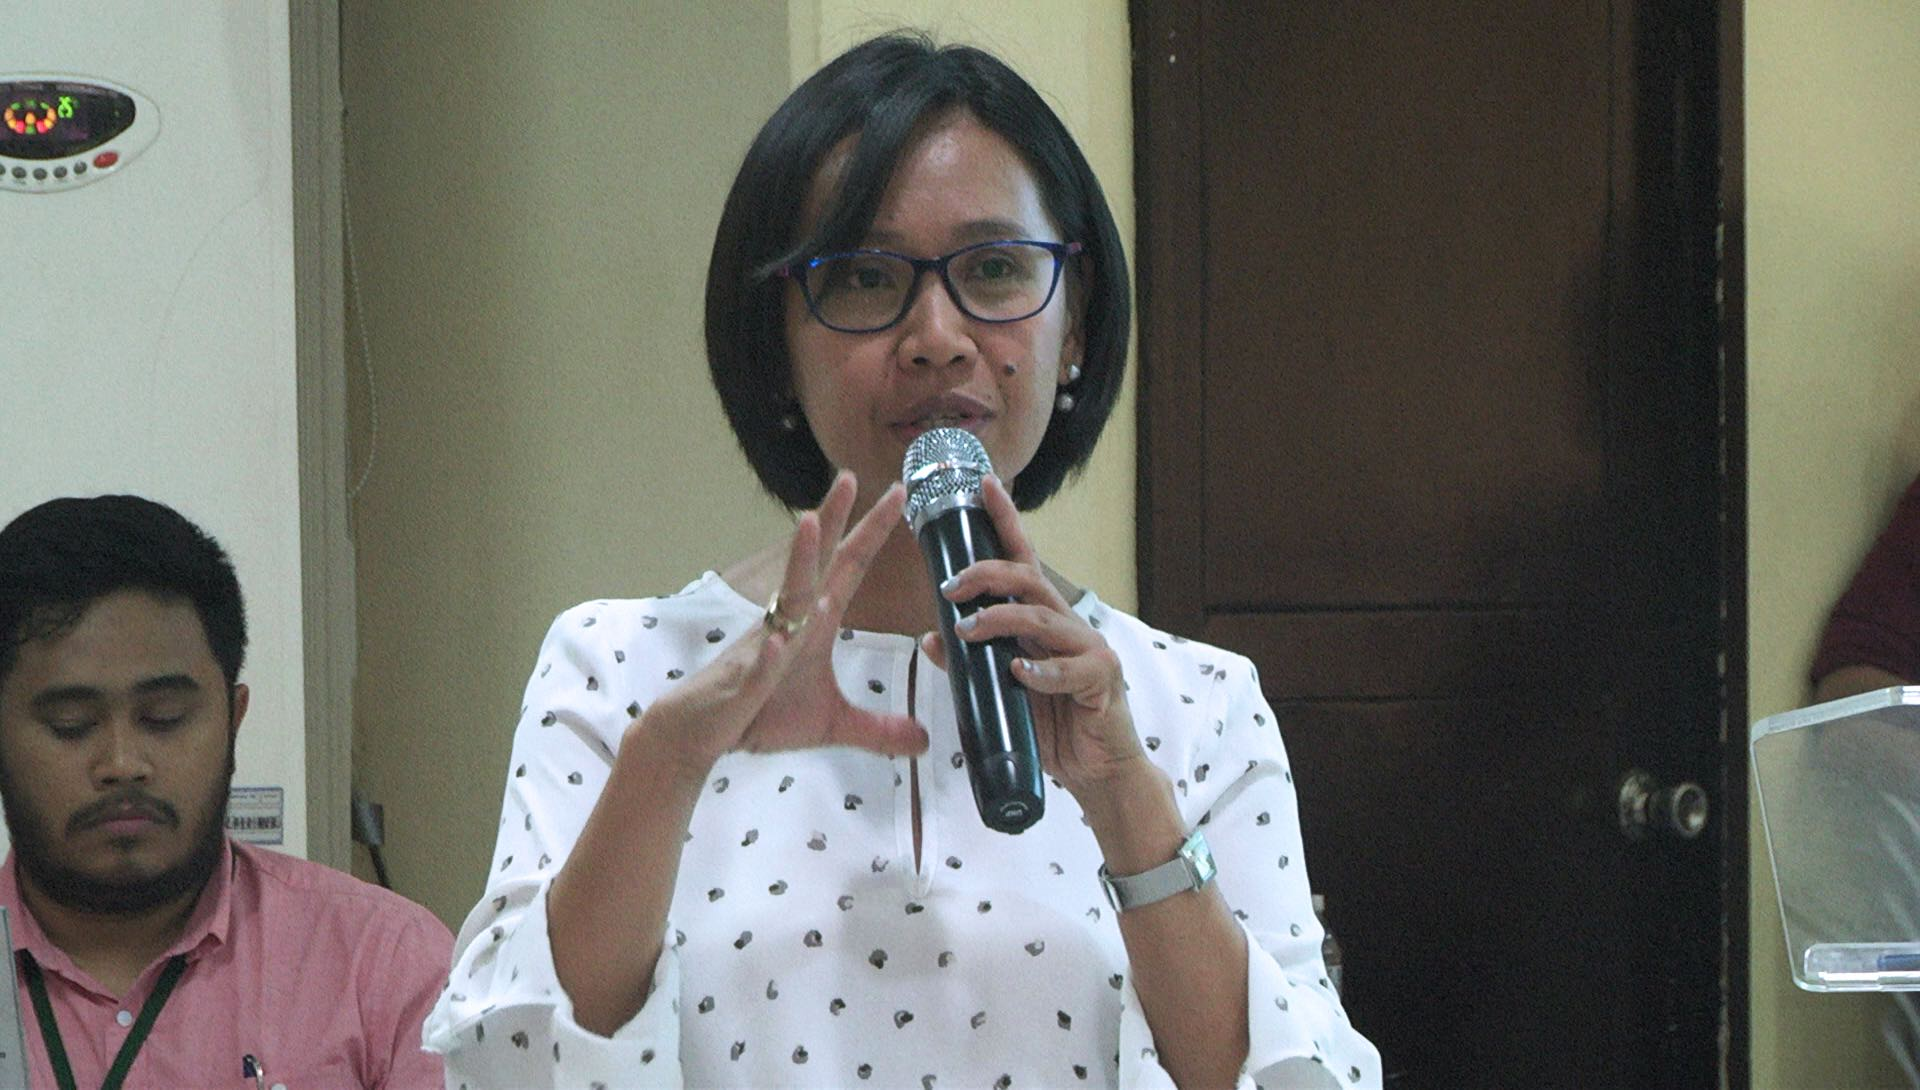 Director Ronilda Co of the DepEd Disaster Risk Reduction and Management Services Office